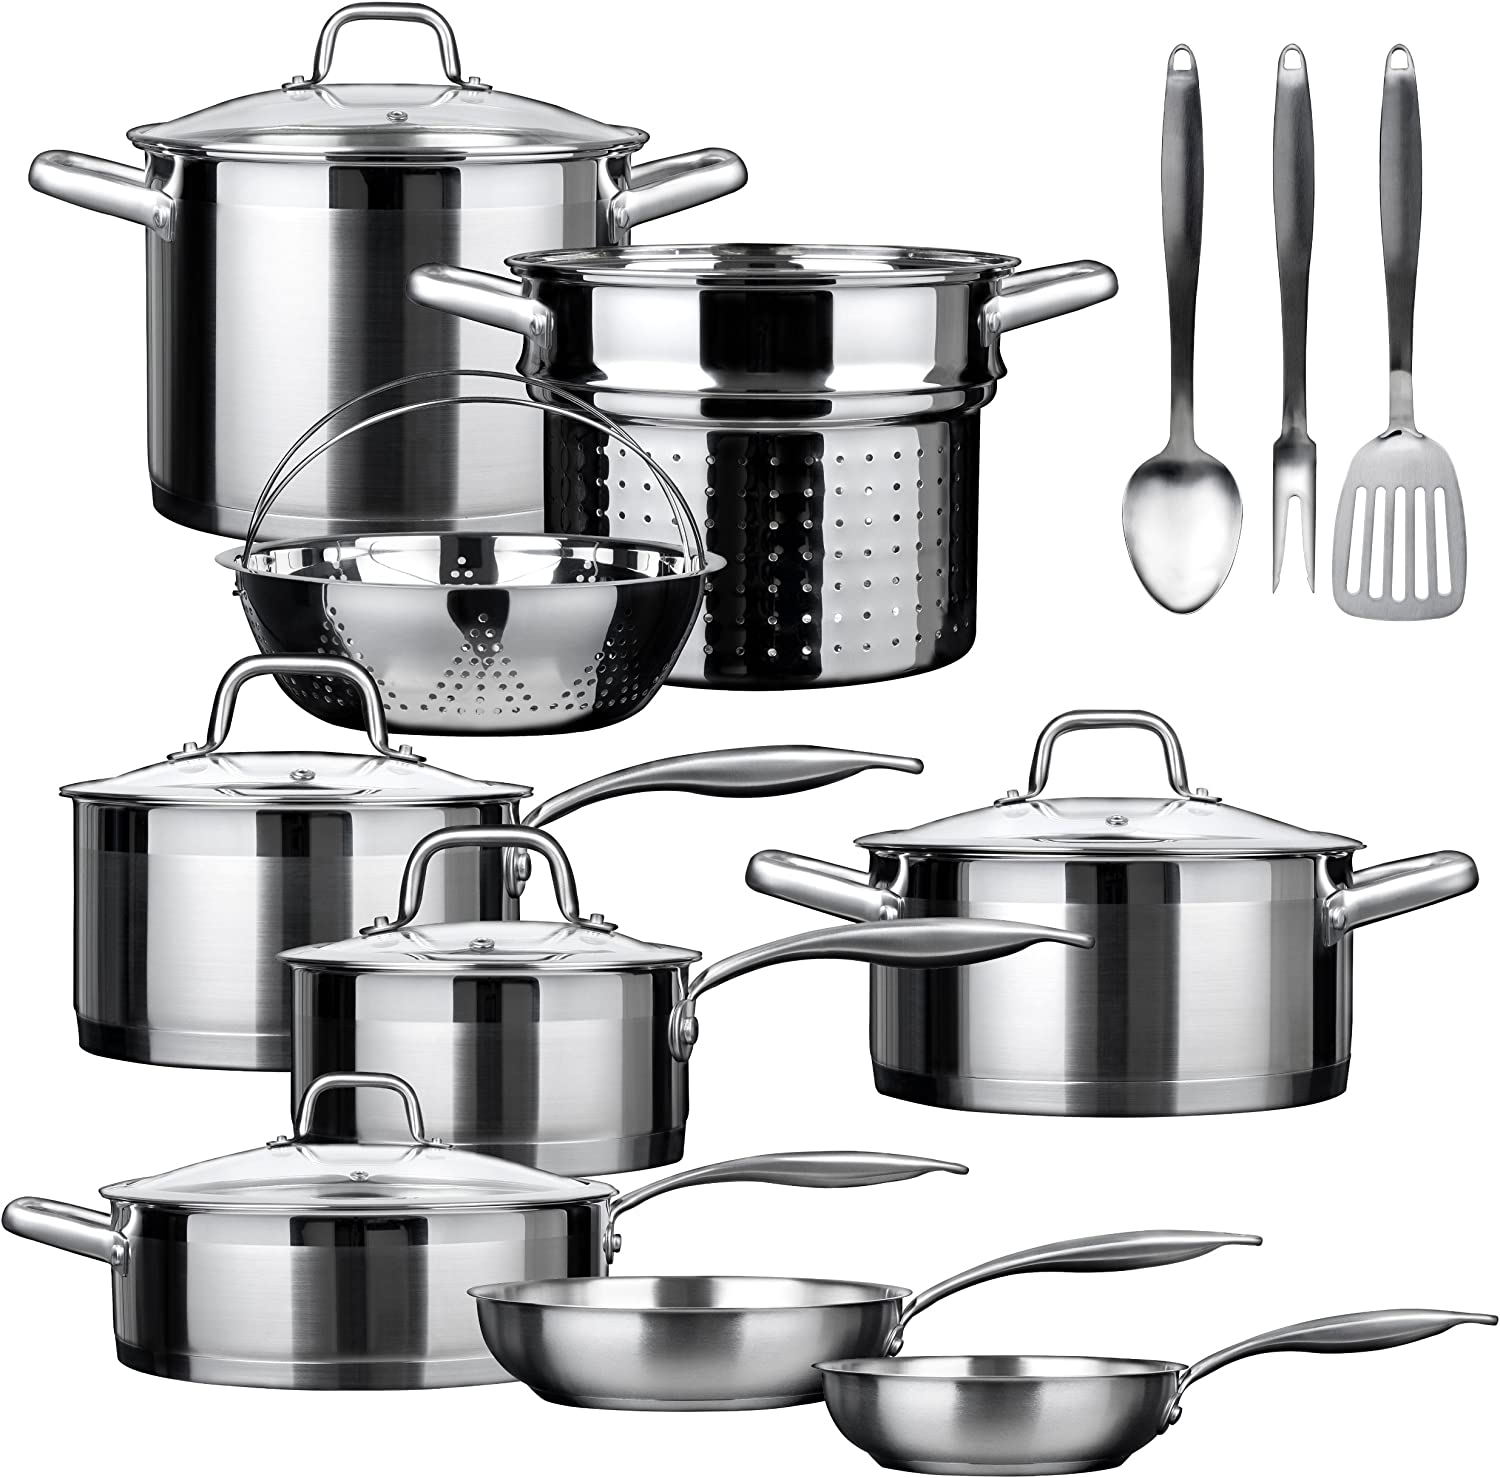 Duxtop Stainless Steel Induction Cookware Set